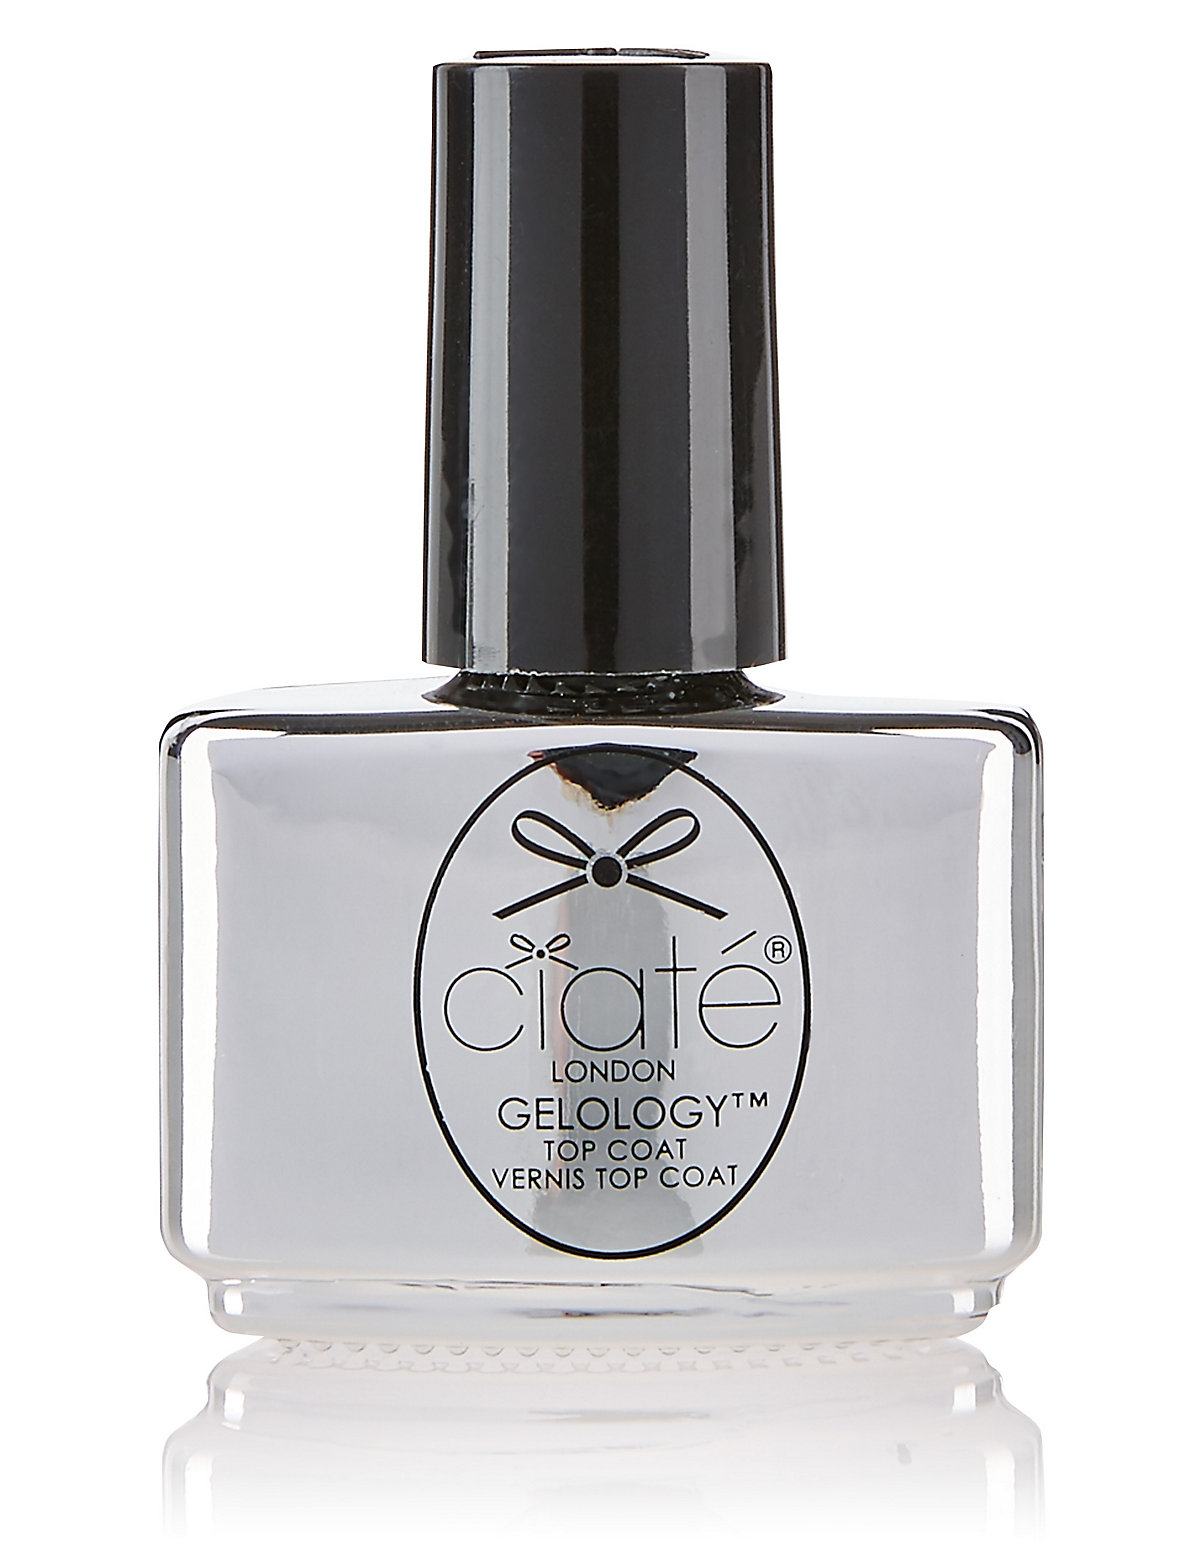 Ciate London Pick & Mix Gelology Top Coat 5ml